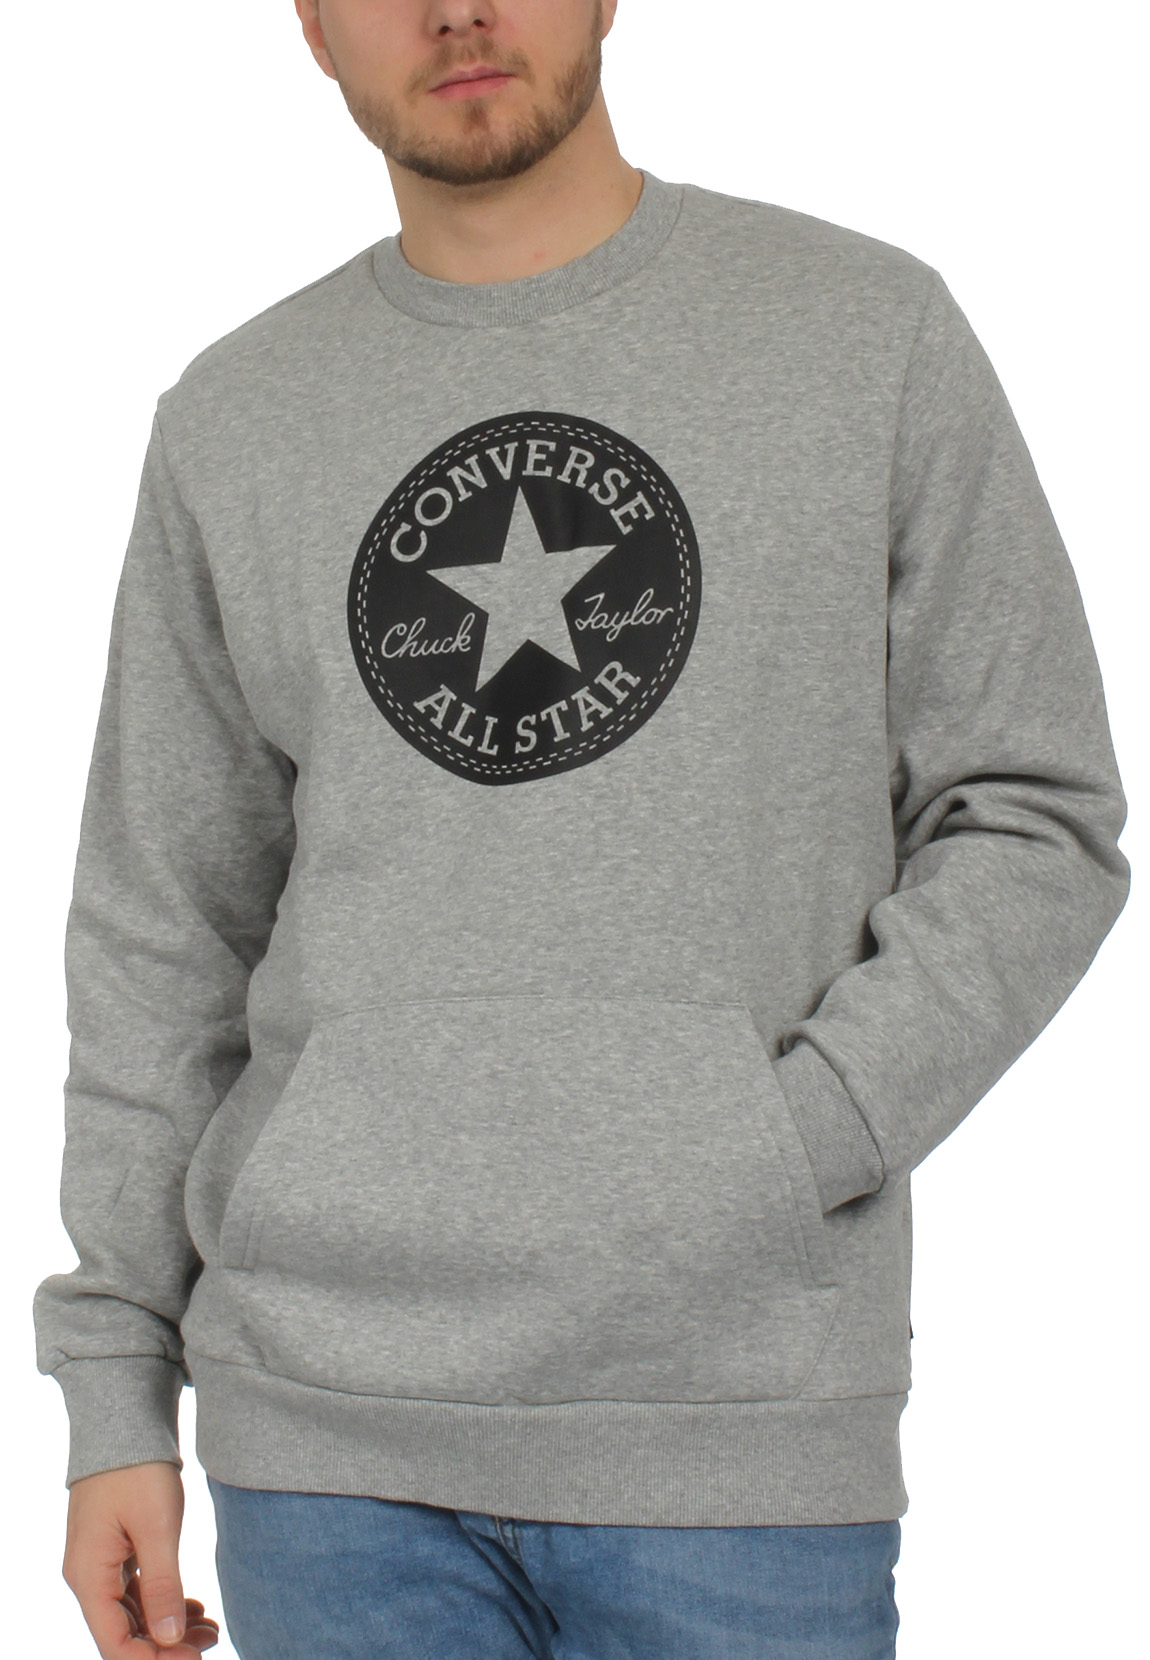 Details about Converse Men's Sweater Chuck Patch Graphic Crew 10005825 035 Grey